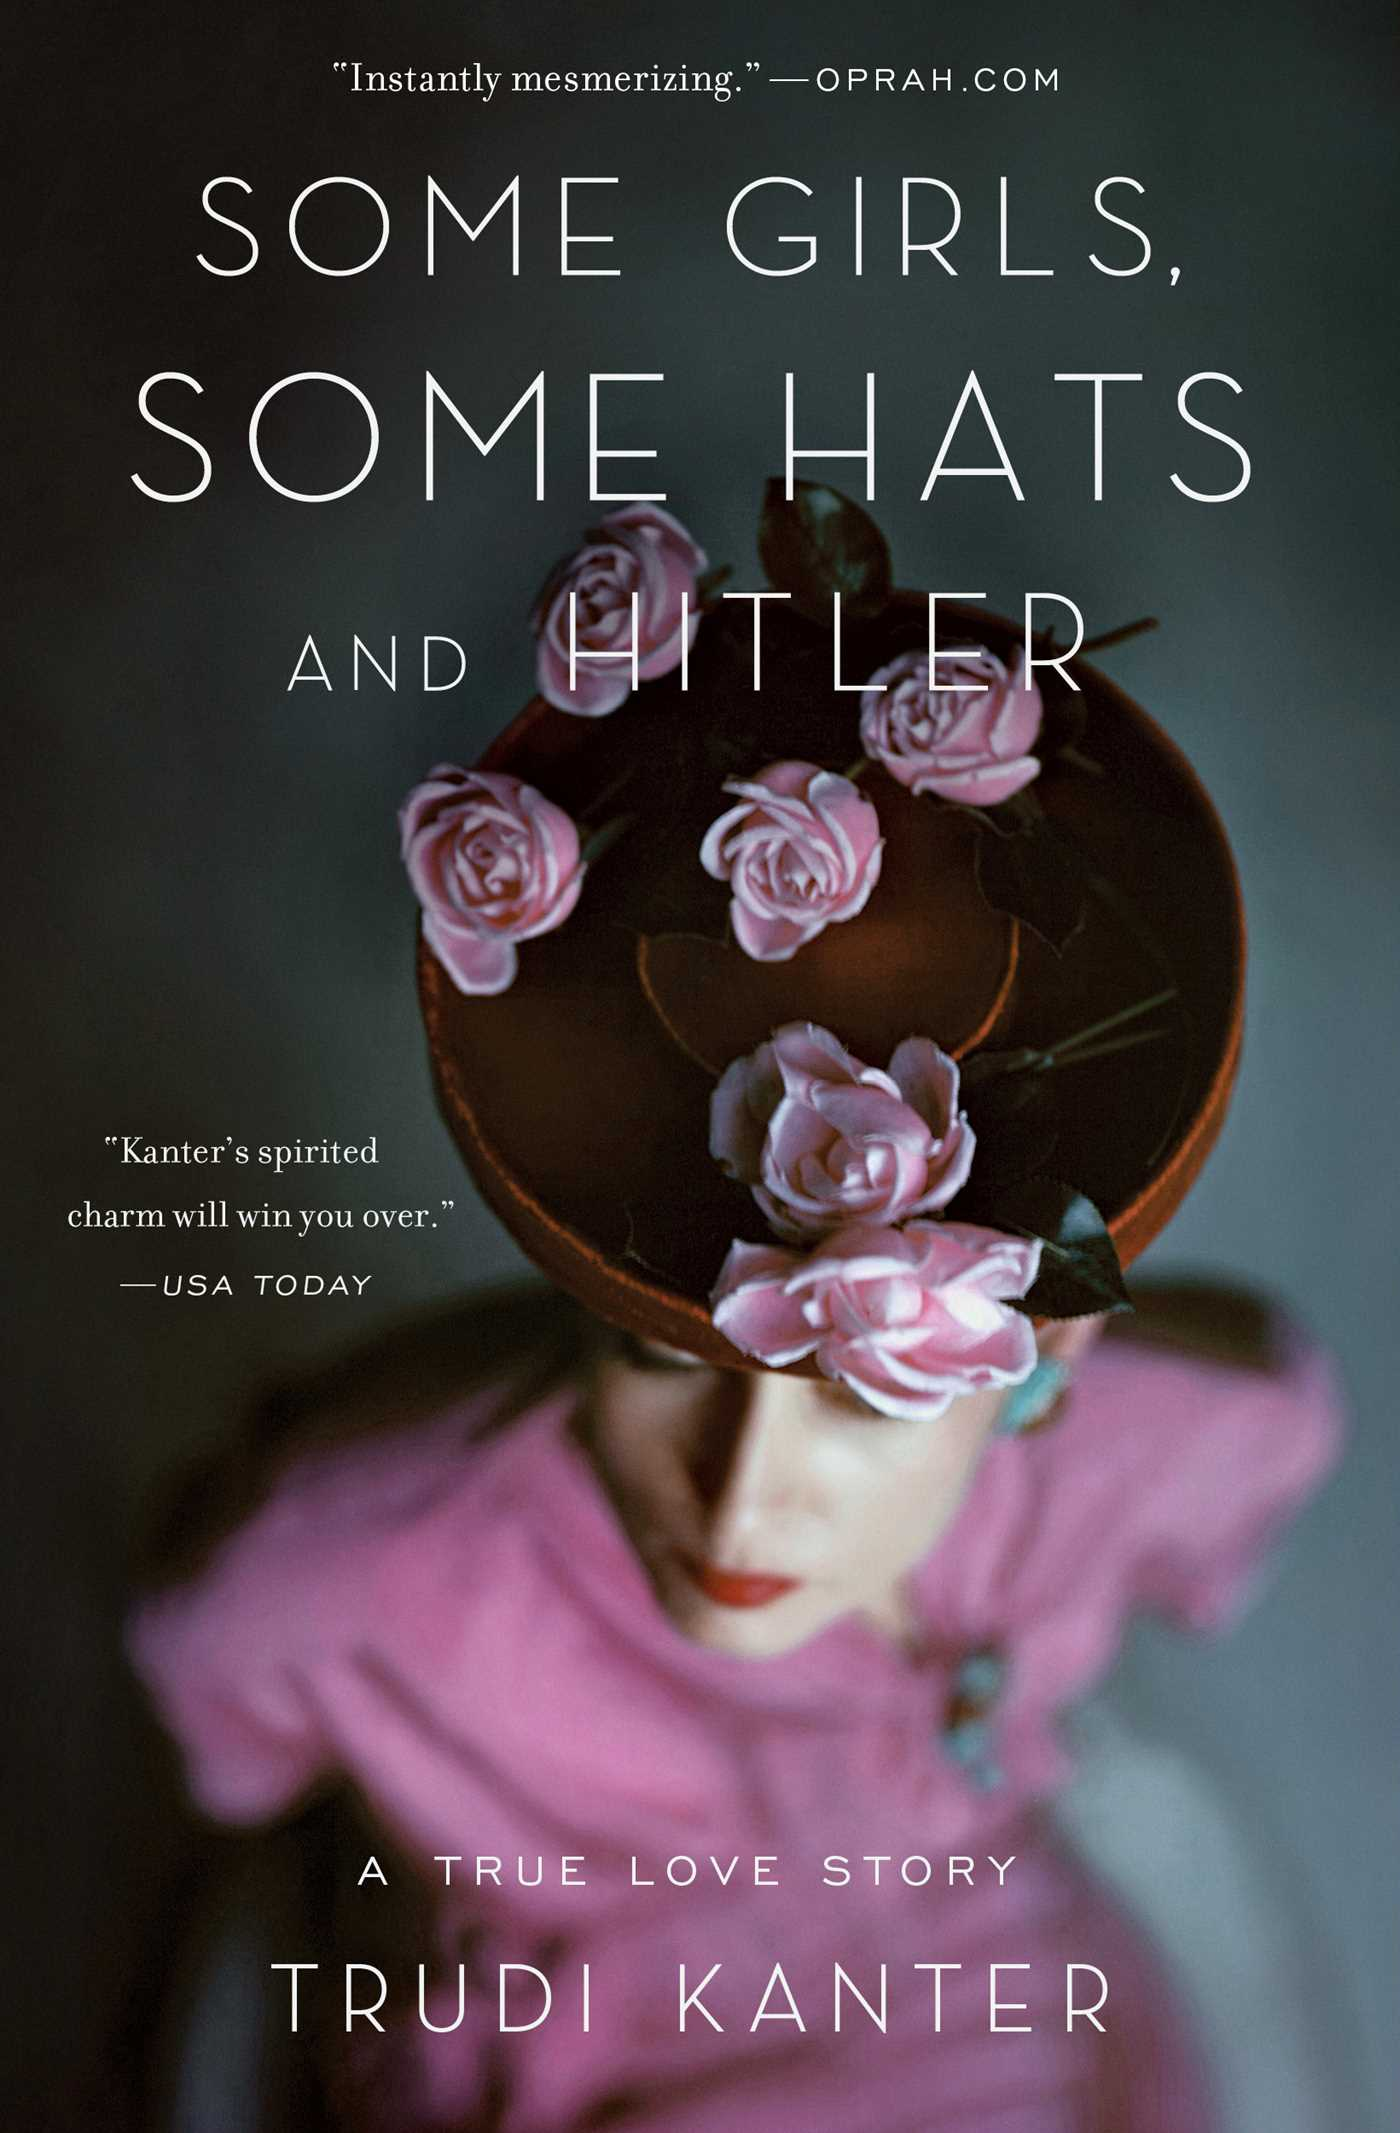 Some-girls-some-hats-and-hitler-9781451696592_hr